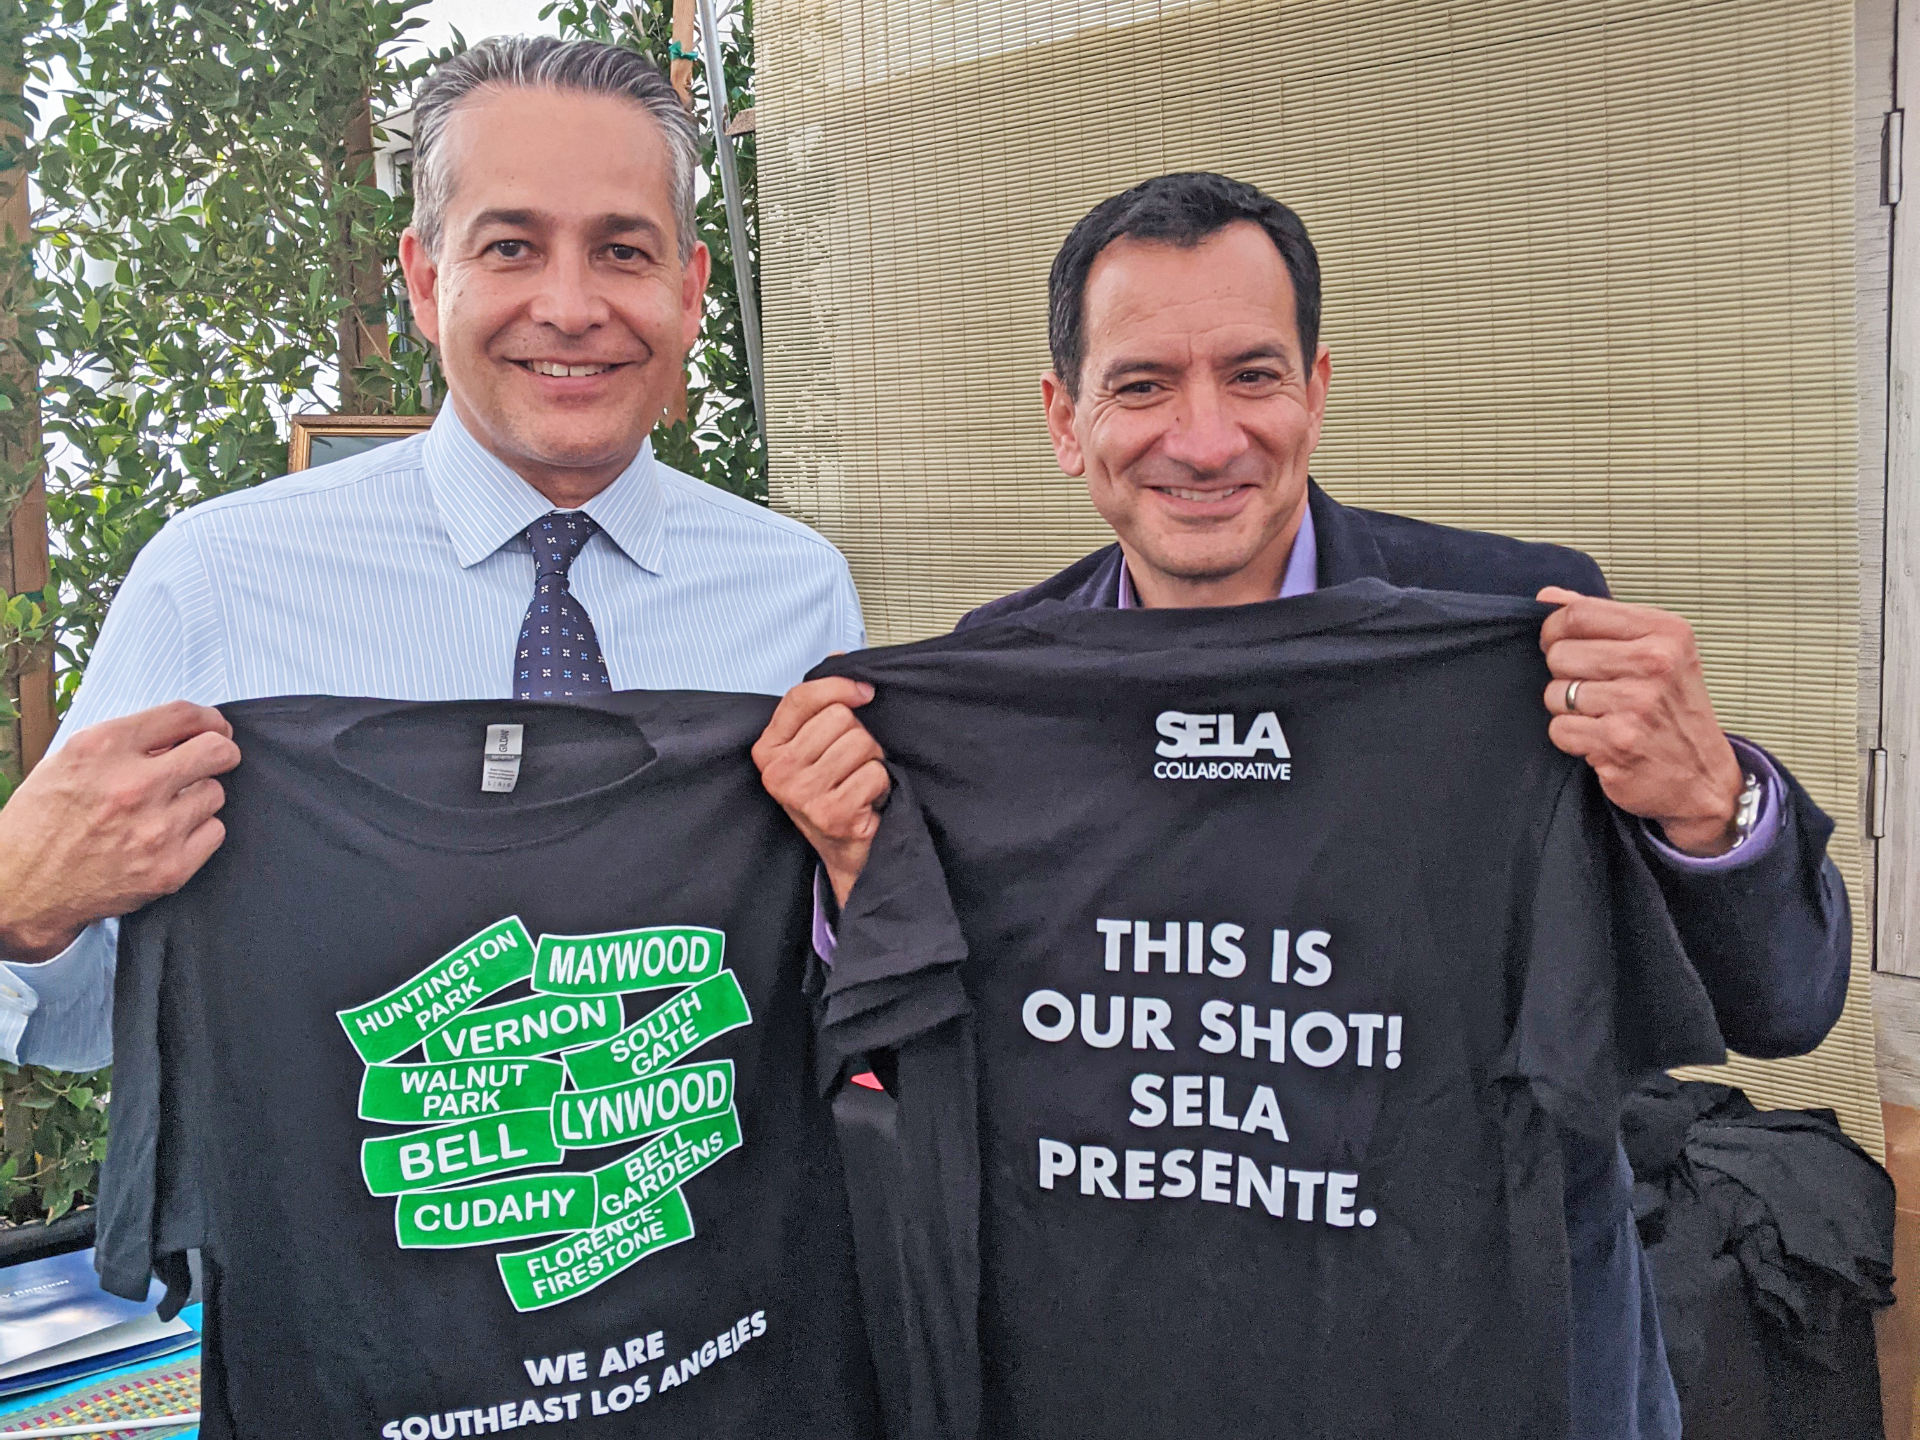 SELA Collaborative Honored as a CA Nonprofit of the Year